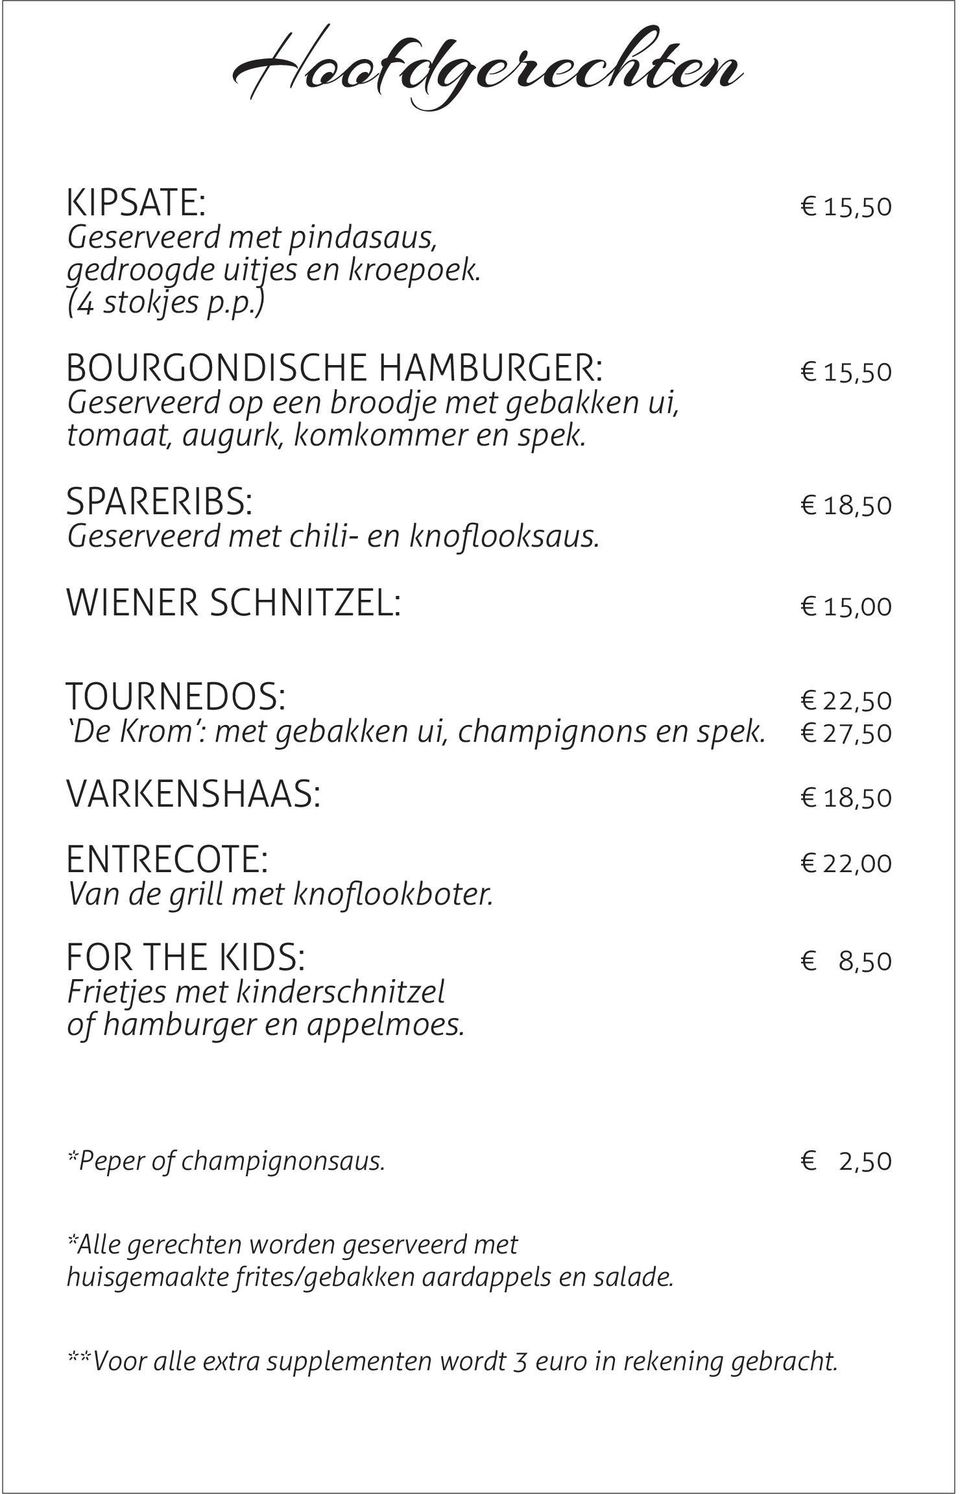 27,50 VARKENSHAAS: 18,50 ENTRECOTE: 22,00 Van de grill met knoflookboter. FOR THE KIDS: 8,50 Frietjes met kinderschnitzel of hamburger en appelmoes.